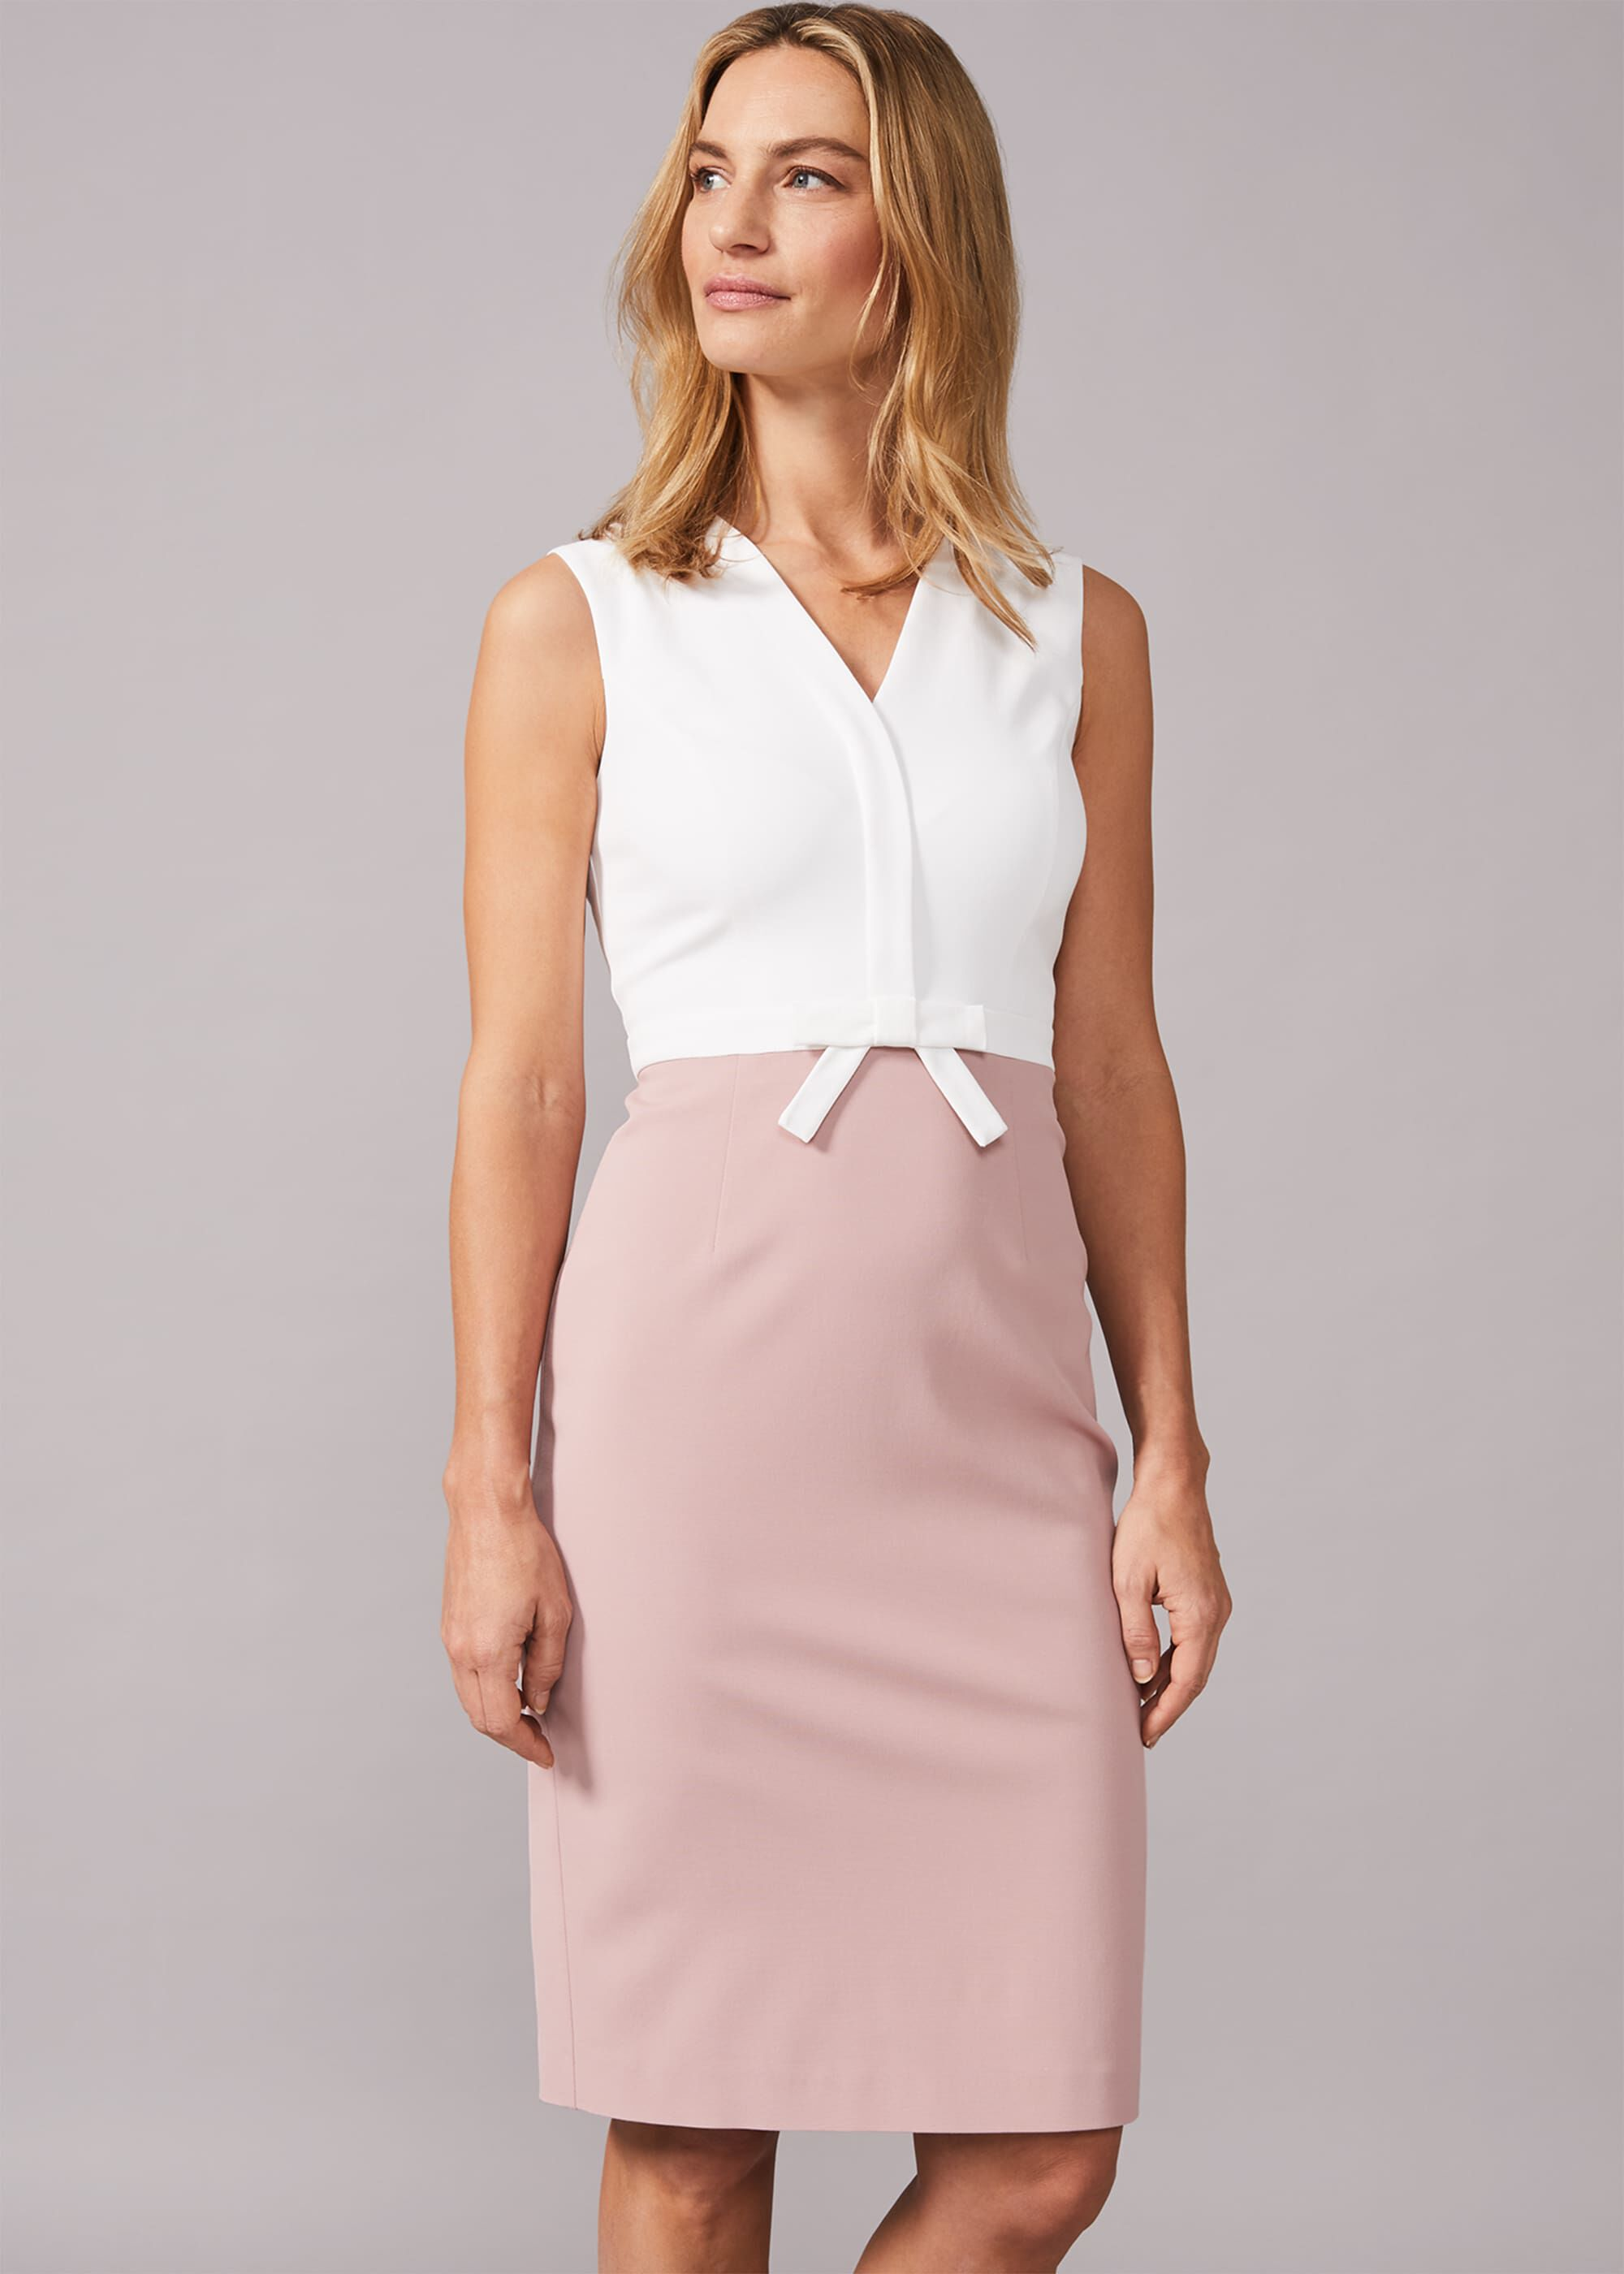 Phase Eight Loanne Bow Detail Dress, Pink, Fitted, Occasion Dress